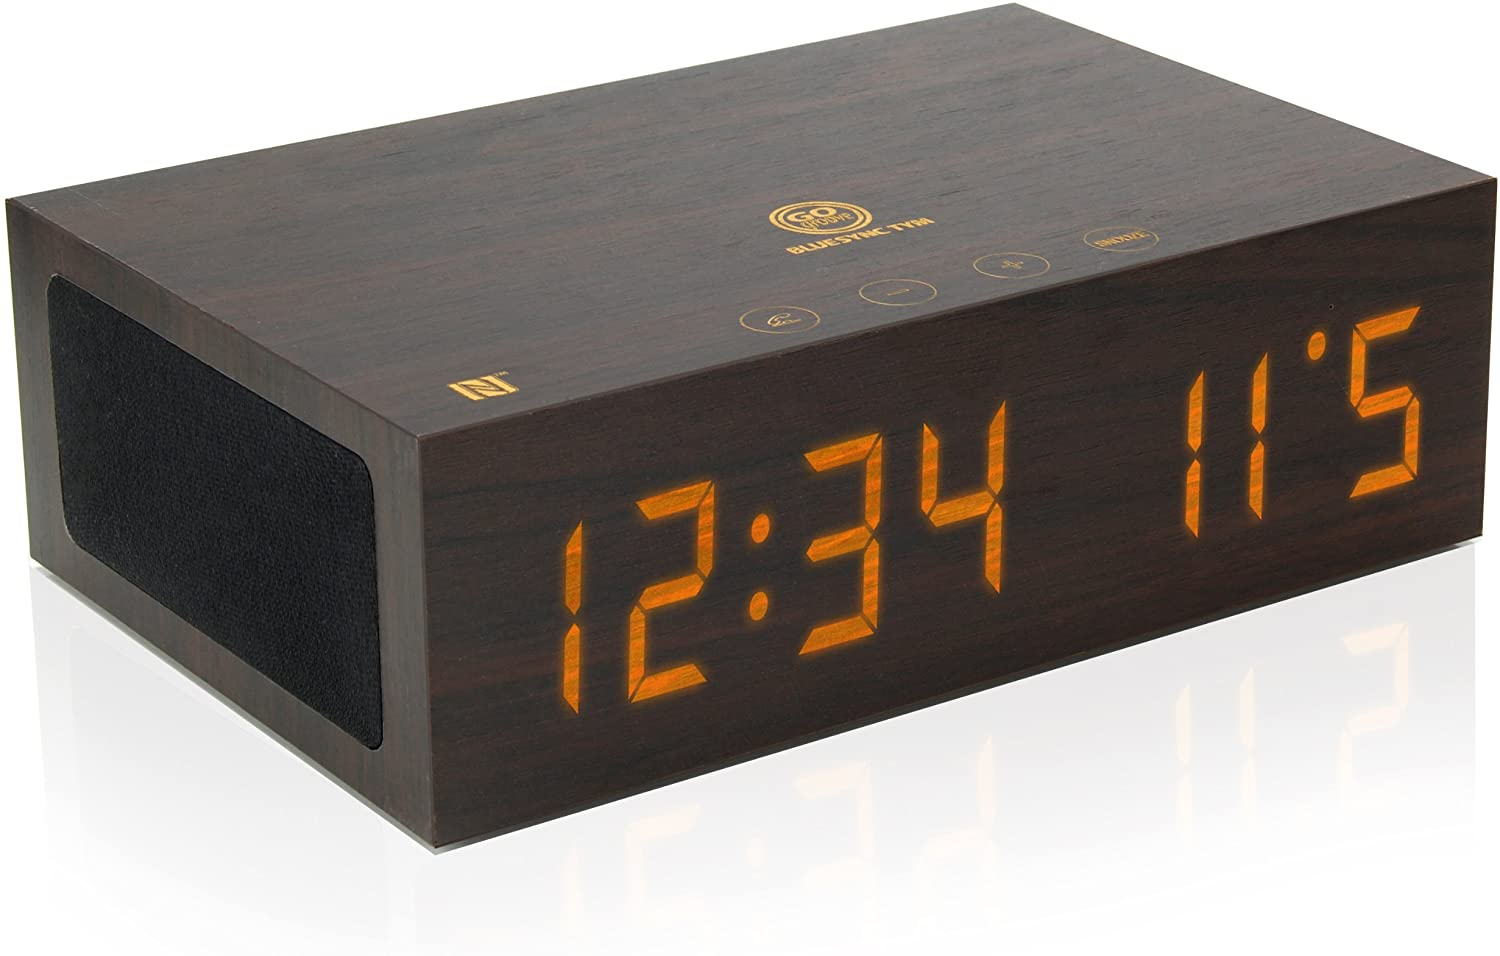 Bluetooth Digital Alarm Clock Speaker by GOgroove - TYM Wood Alarm Clock w/ Built in Microphone, LED Time & Date Display, Paired Streaming or AUX for Phones, MP3 Players, Tablets (Dark Stain with NFC)